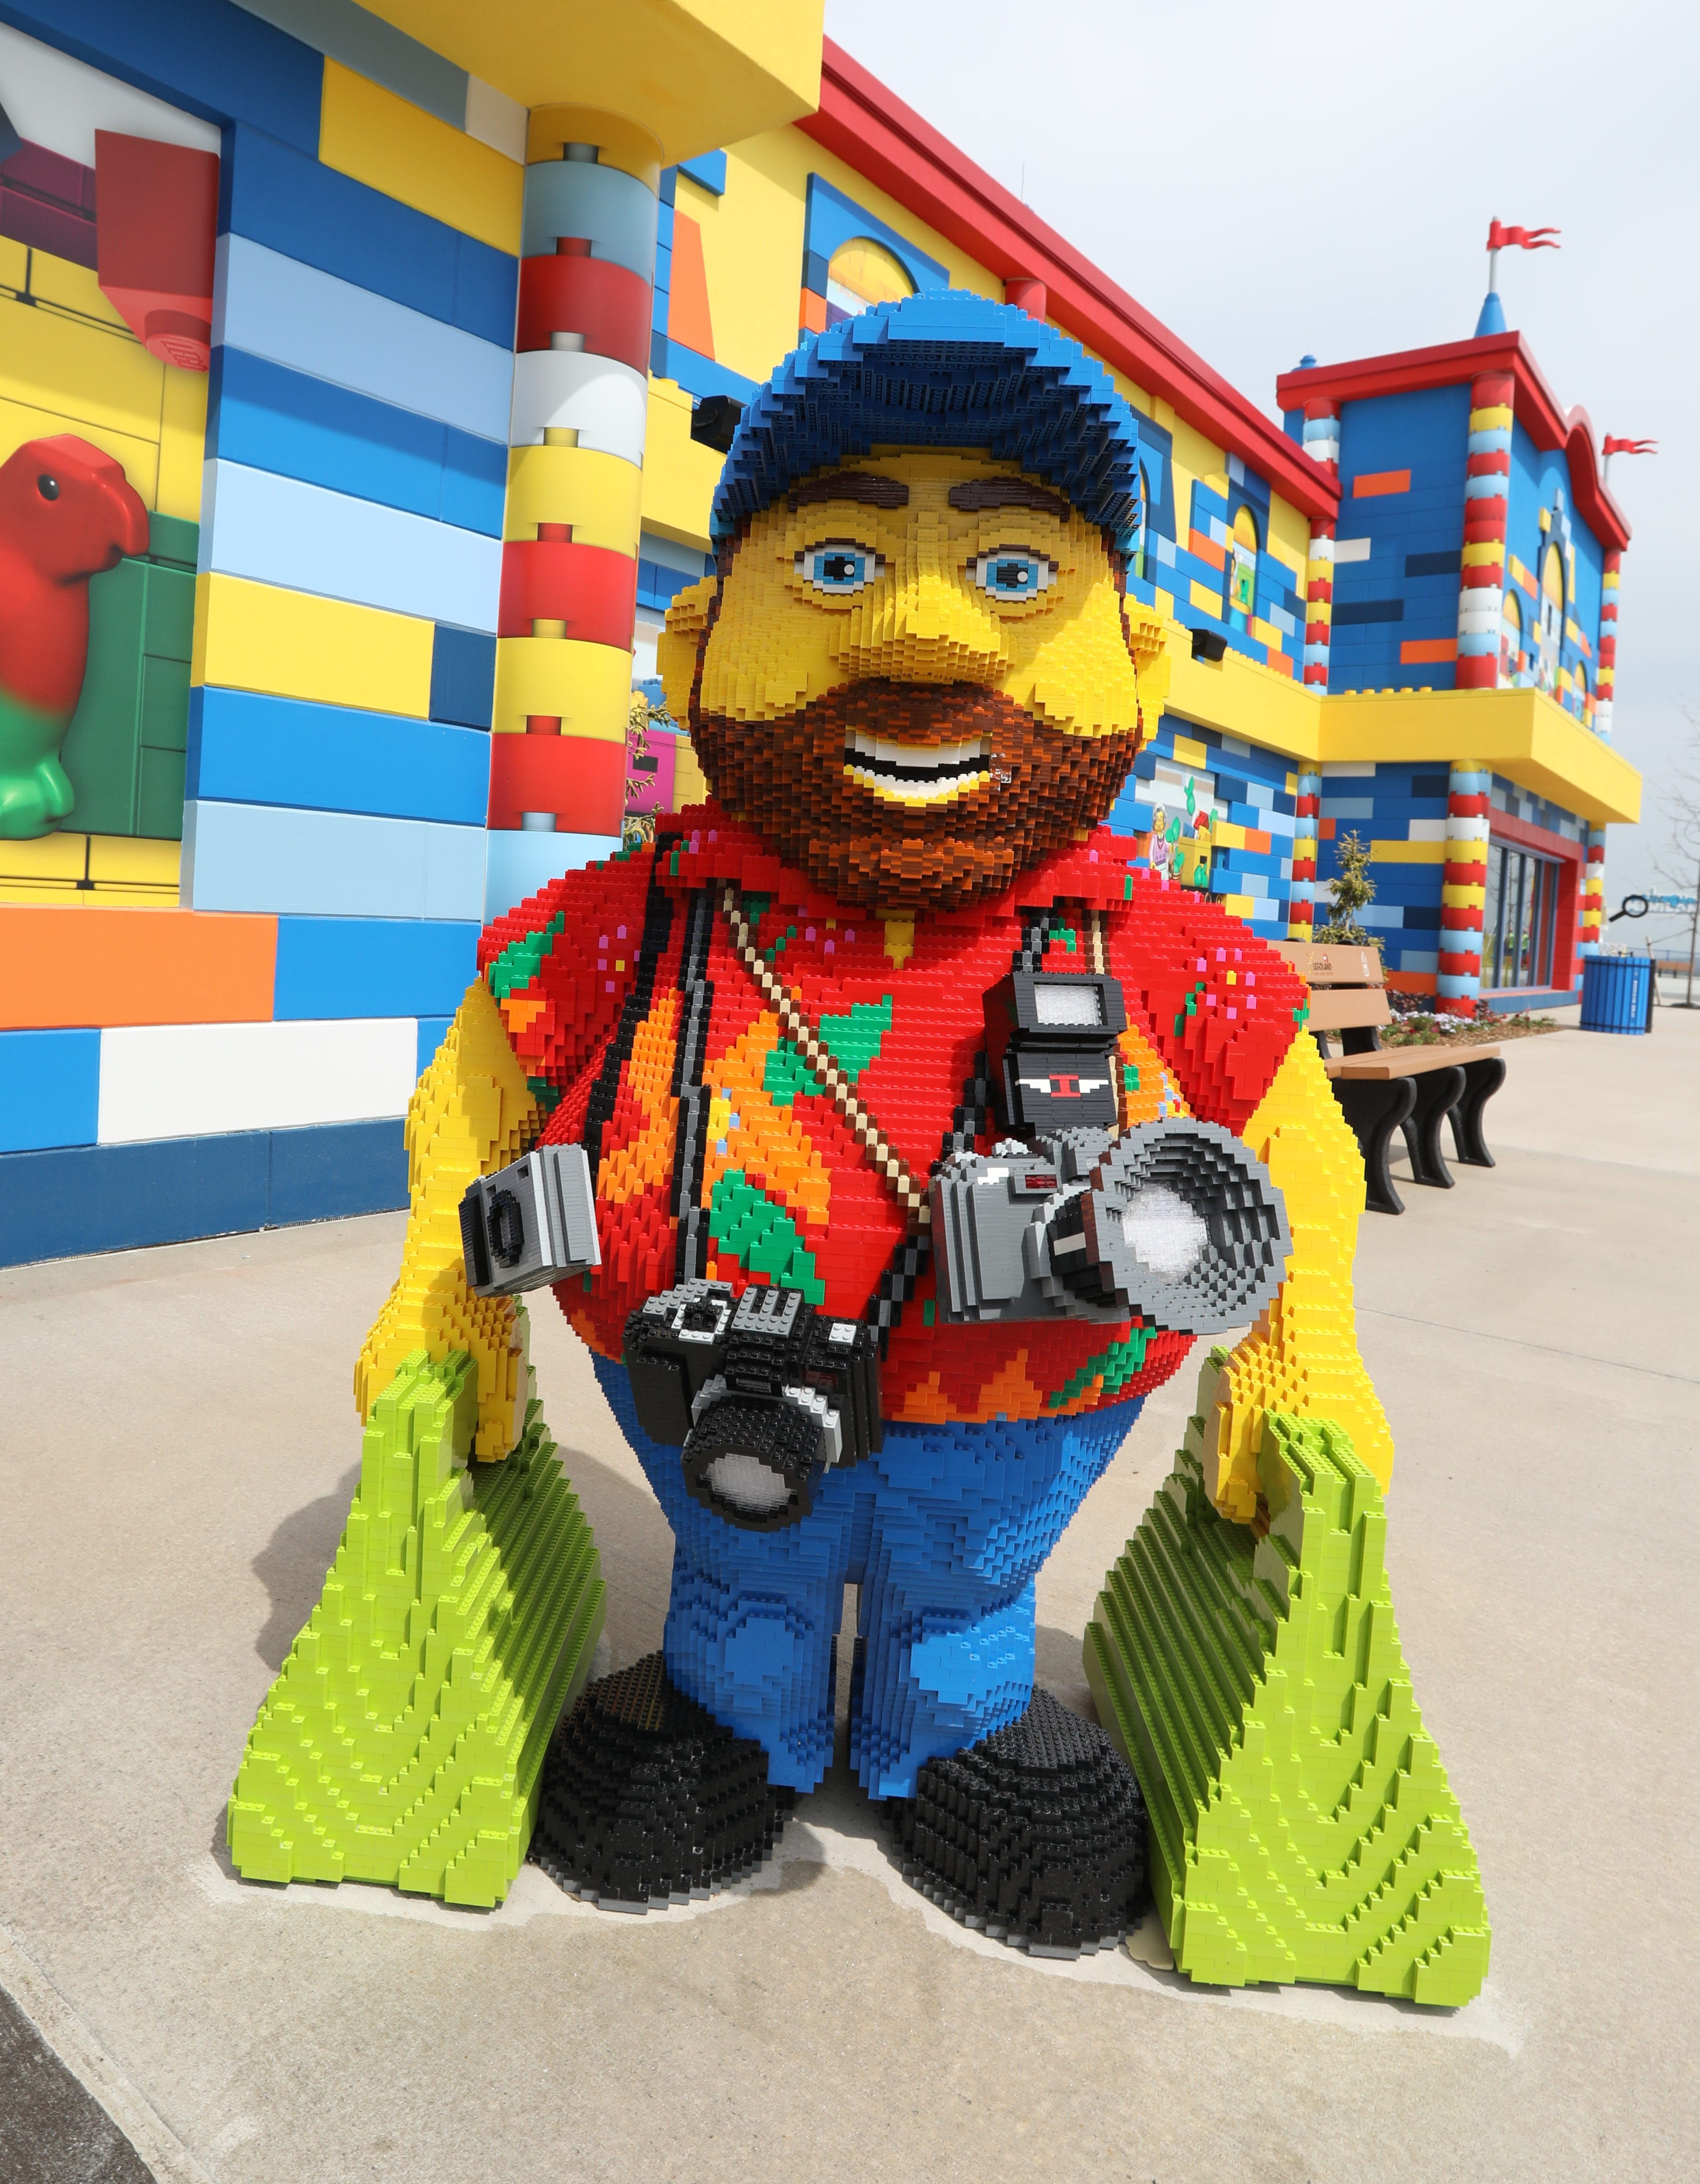 A statue of a tourist at Legoland New York.